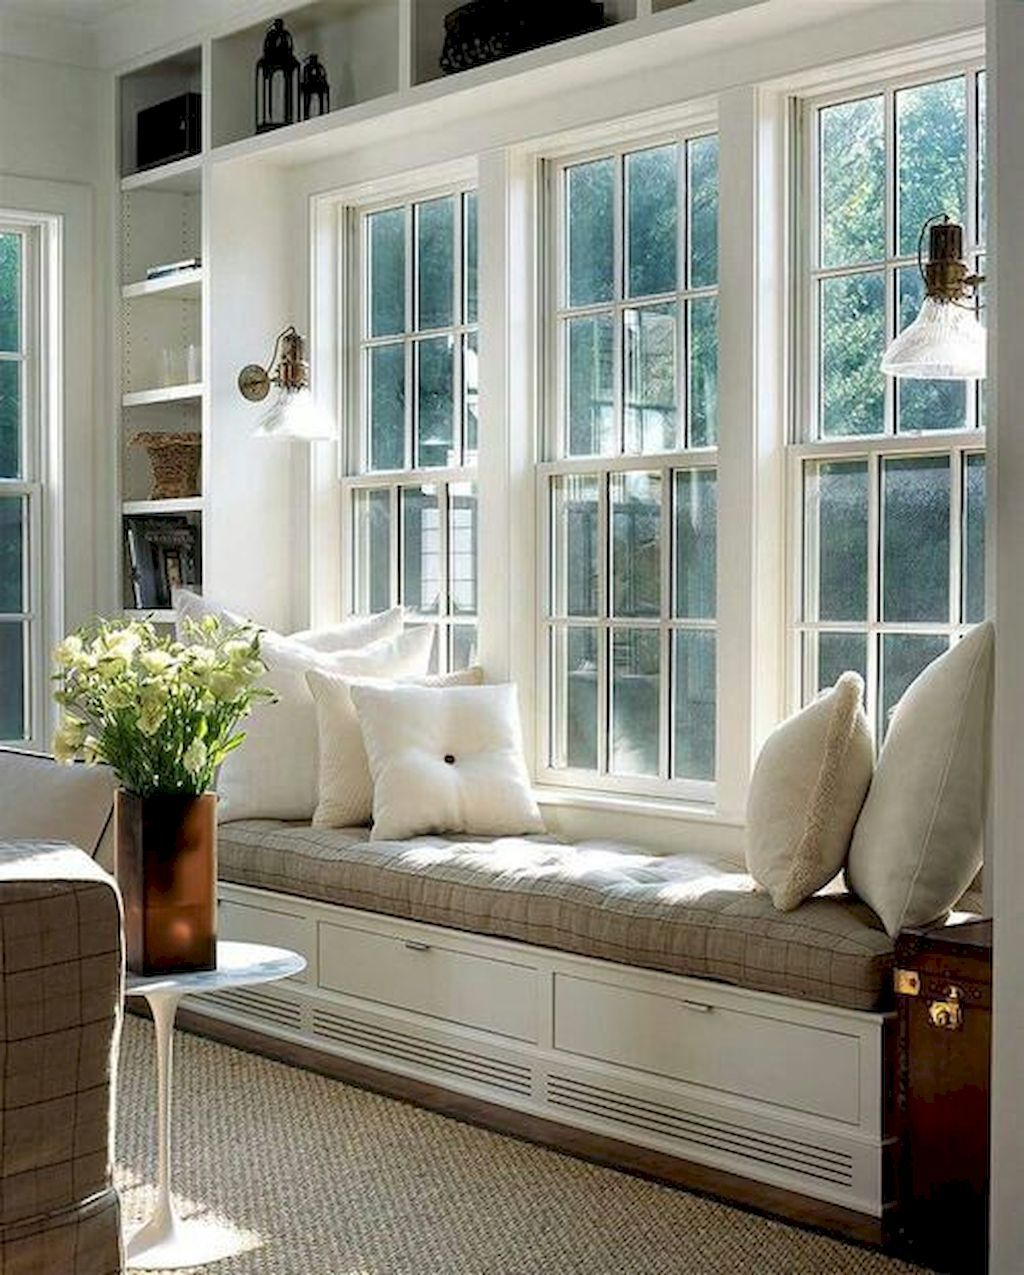 50 Cool Bay Window Decorating Ideas: Fully Comfortable Bay Window Seating Ideas